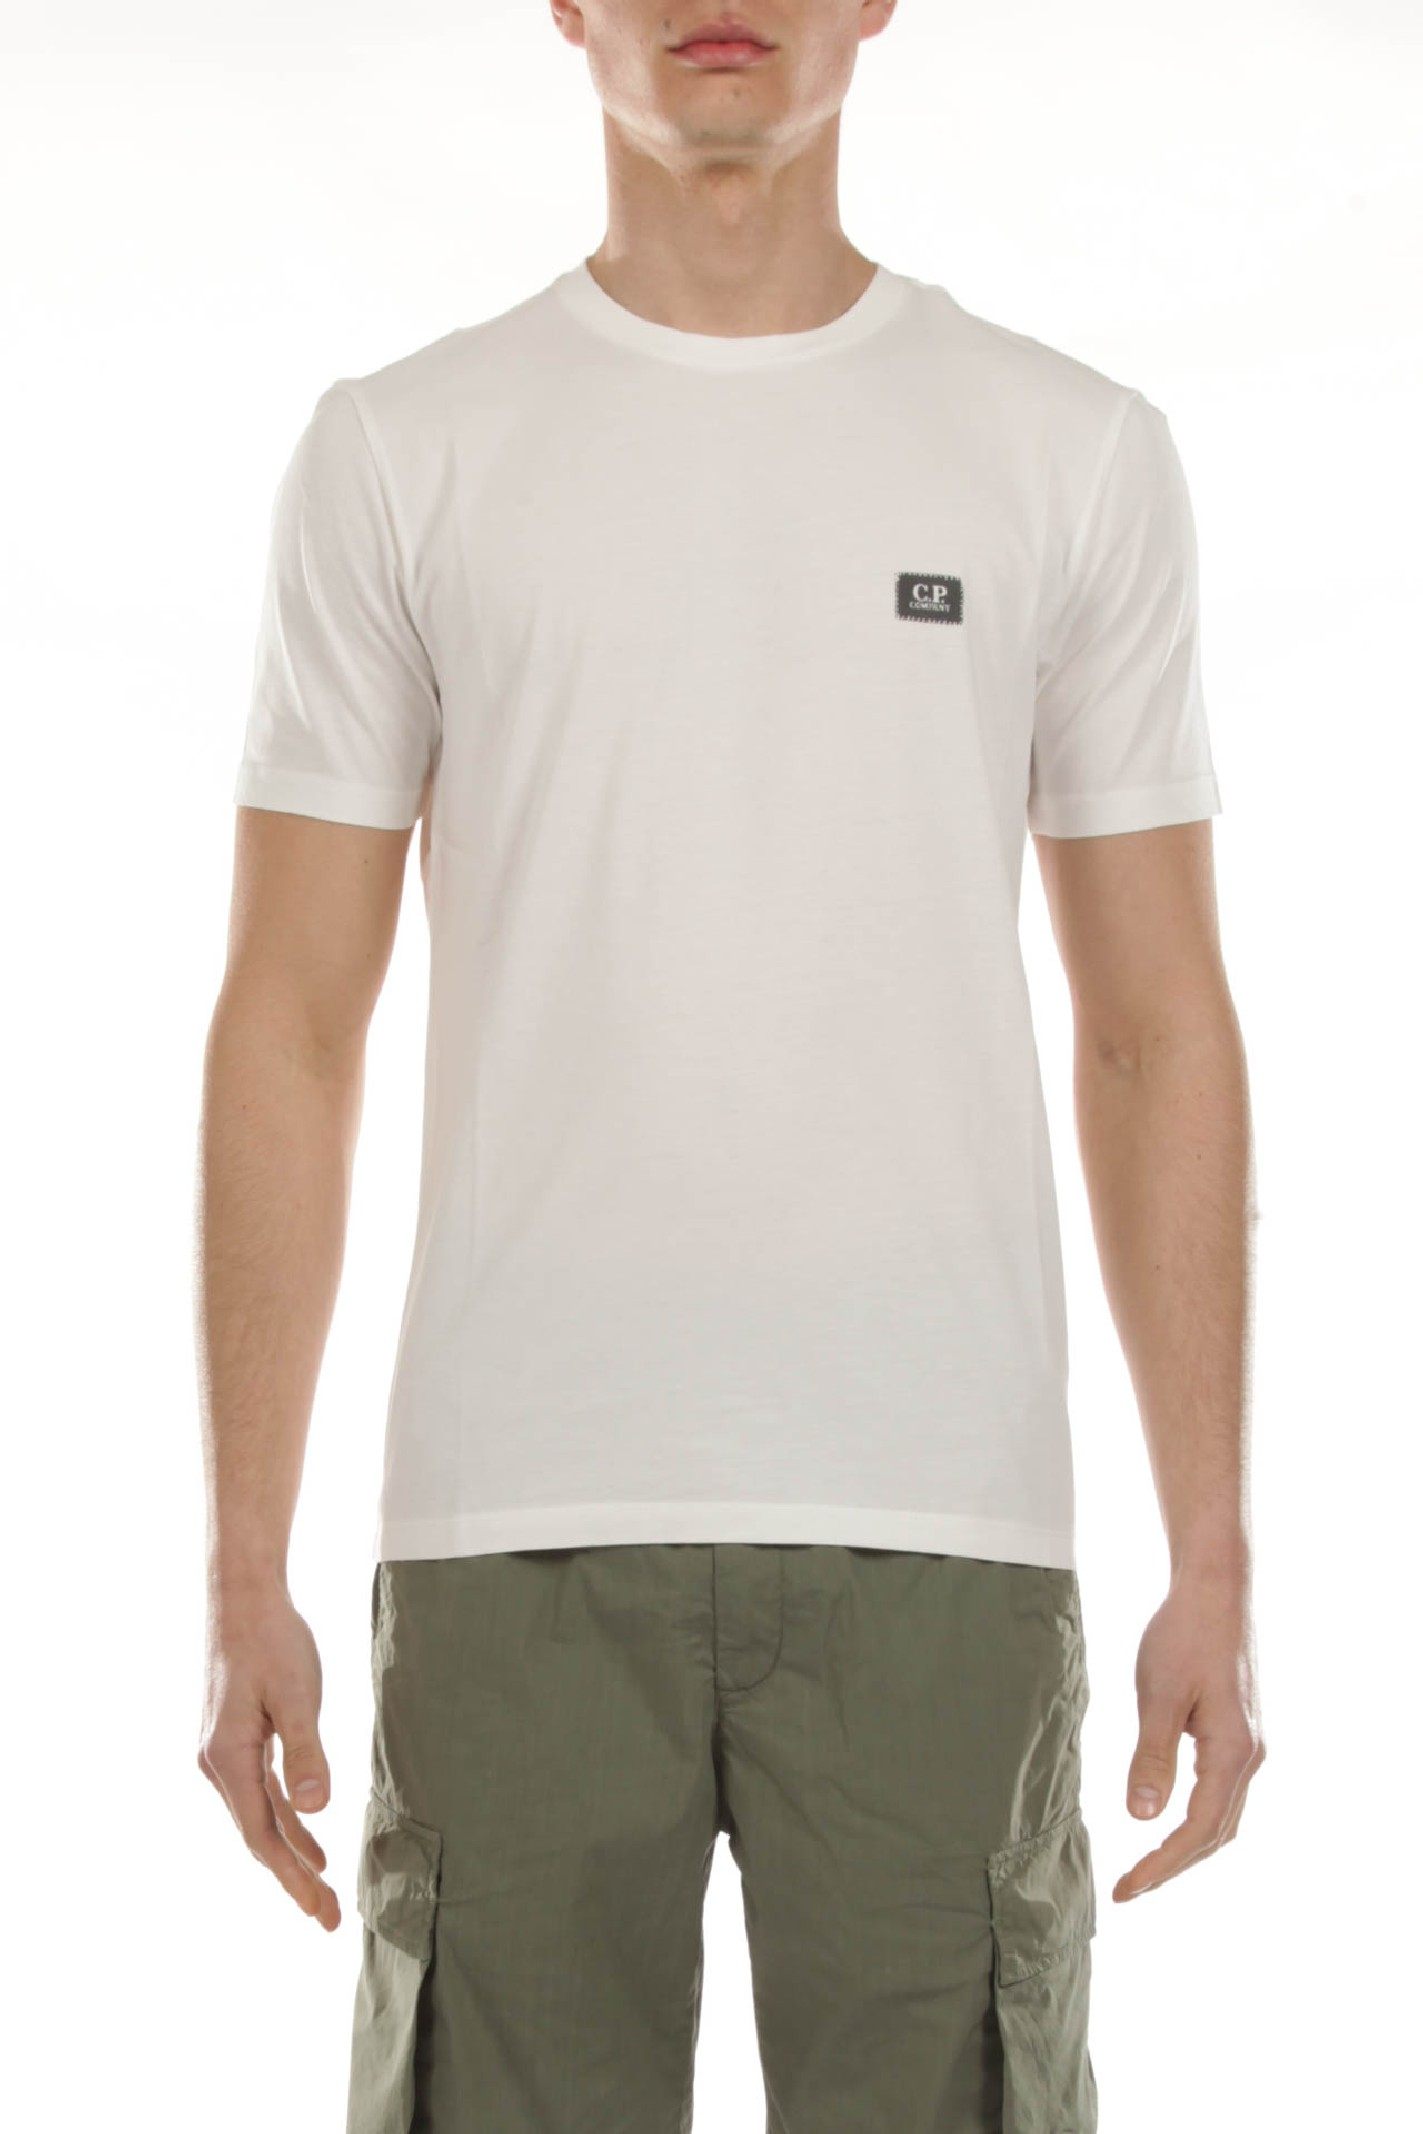 T- shirt con Stampa C.P. COMPANY | T-shirt | MTS063A00 5100W103